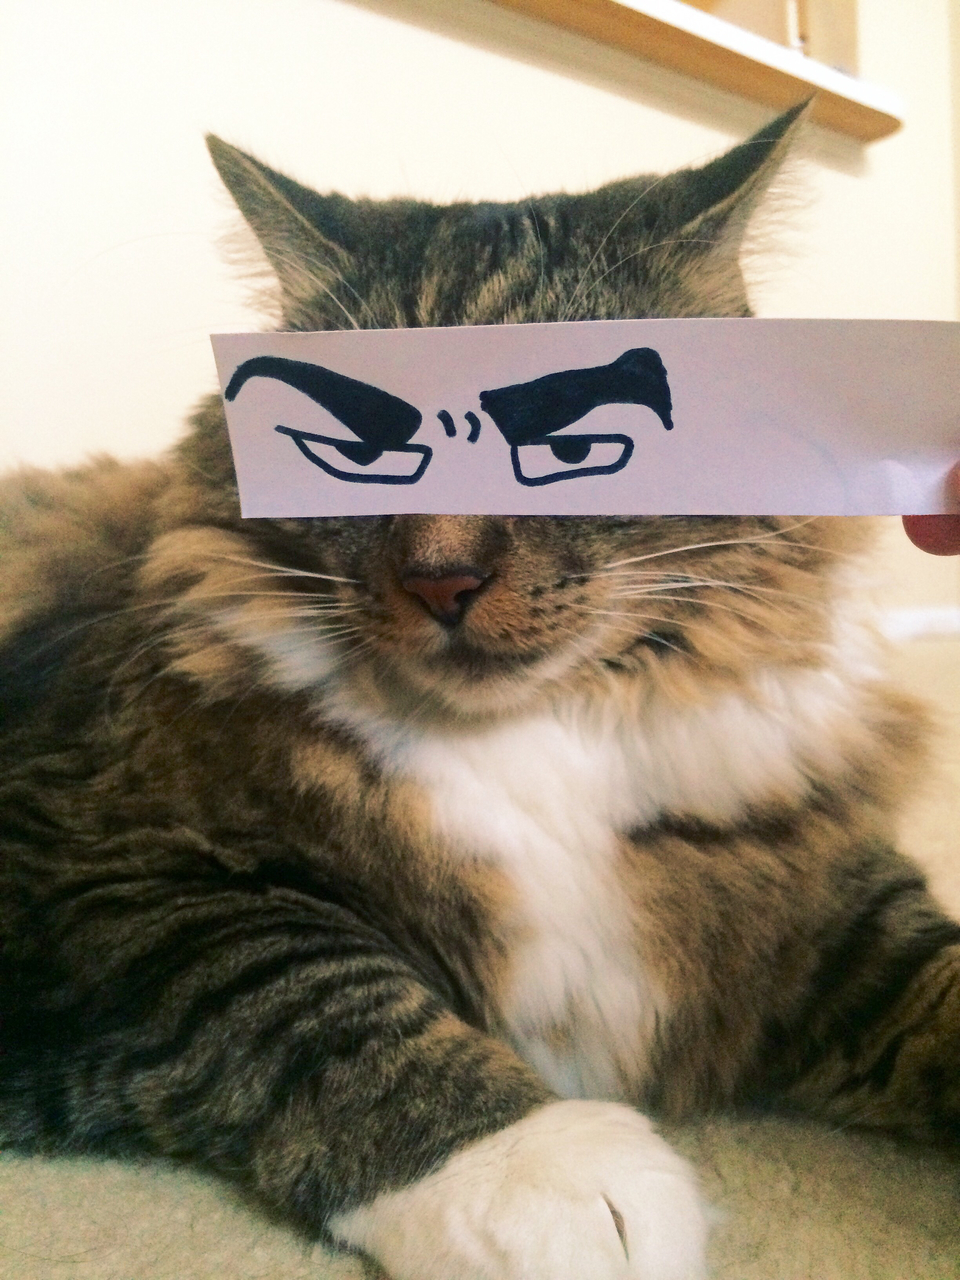 amazing, animal, art, awesome, beautiful, cat, chat, cool, cute, etes, eyebrows, eyes, fashion, funny, idea, ideas, idee, laugh, laughing, live, love, model, paper, papier, perfect, photgraphy, photo, pretty, style, summer, sweet, yeux, sourcils 